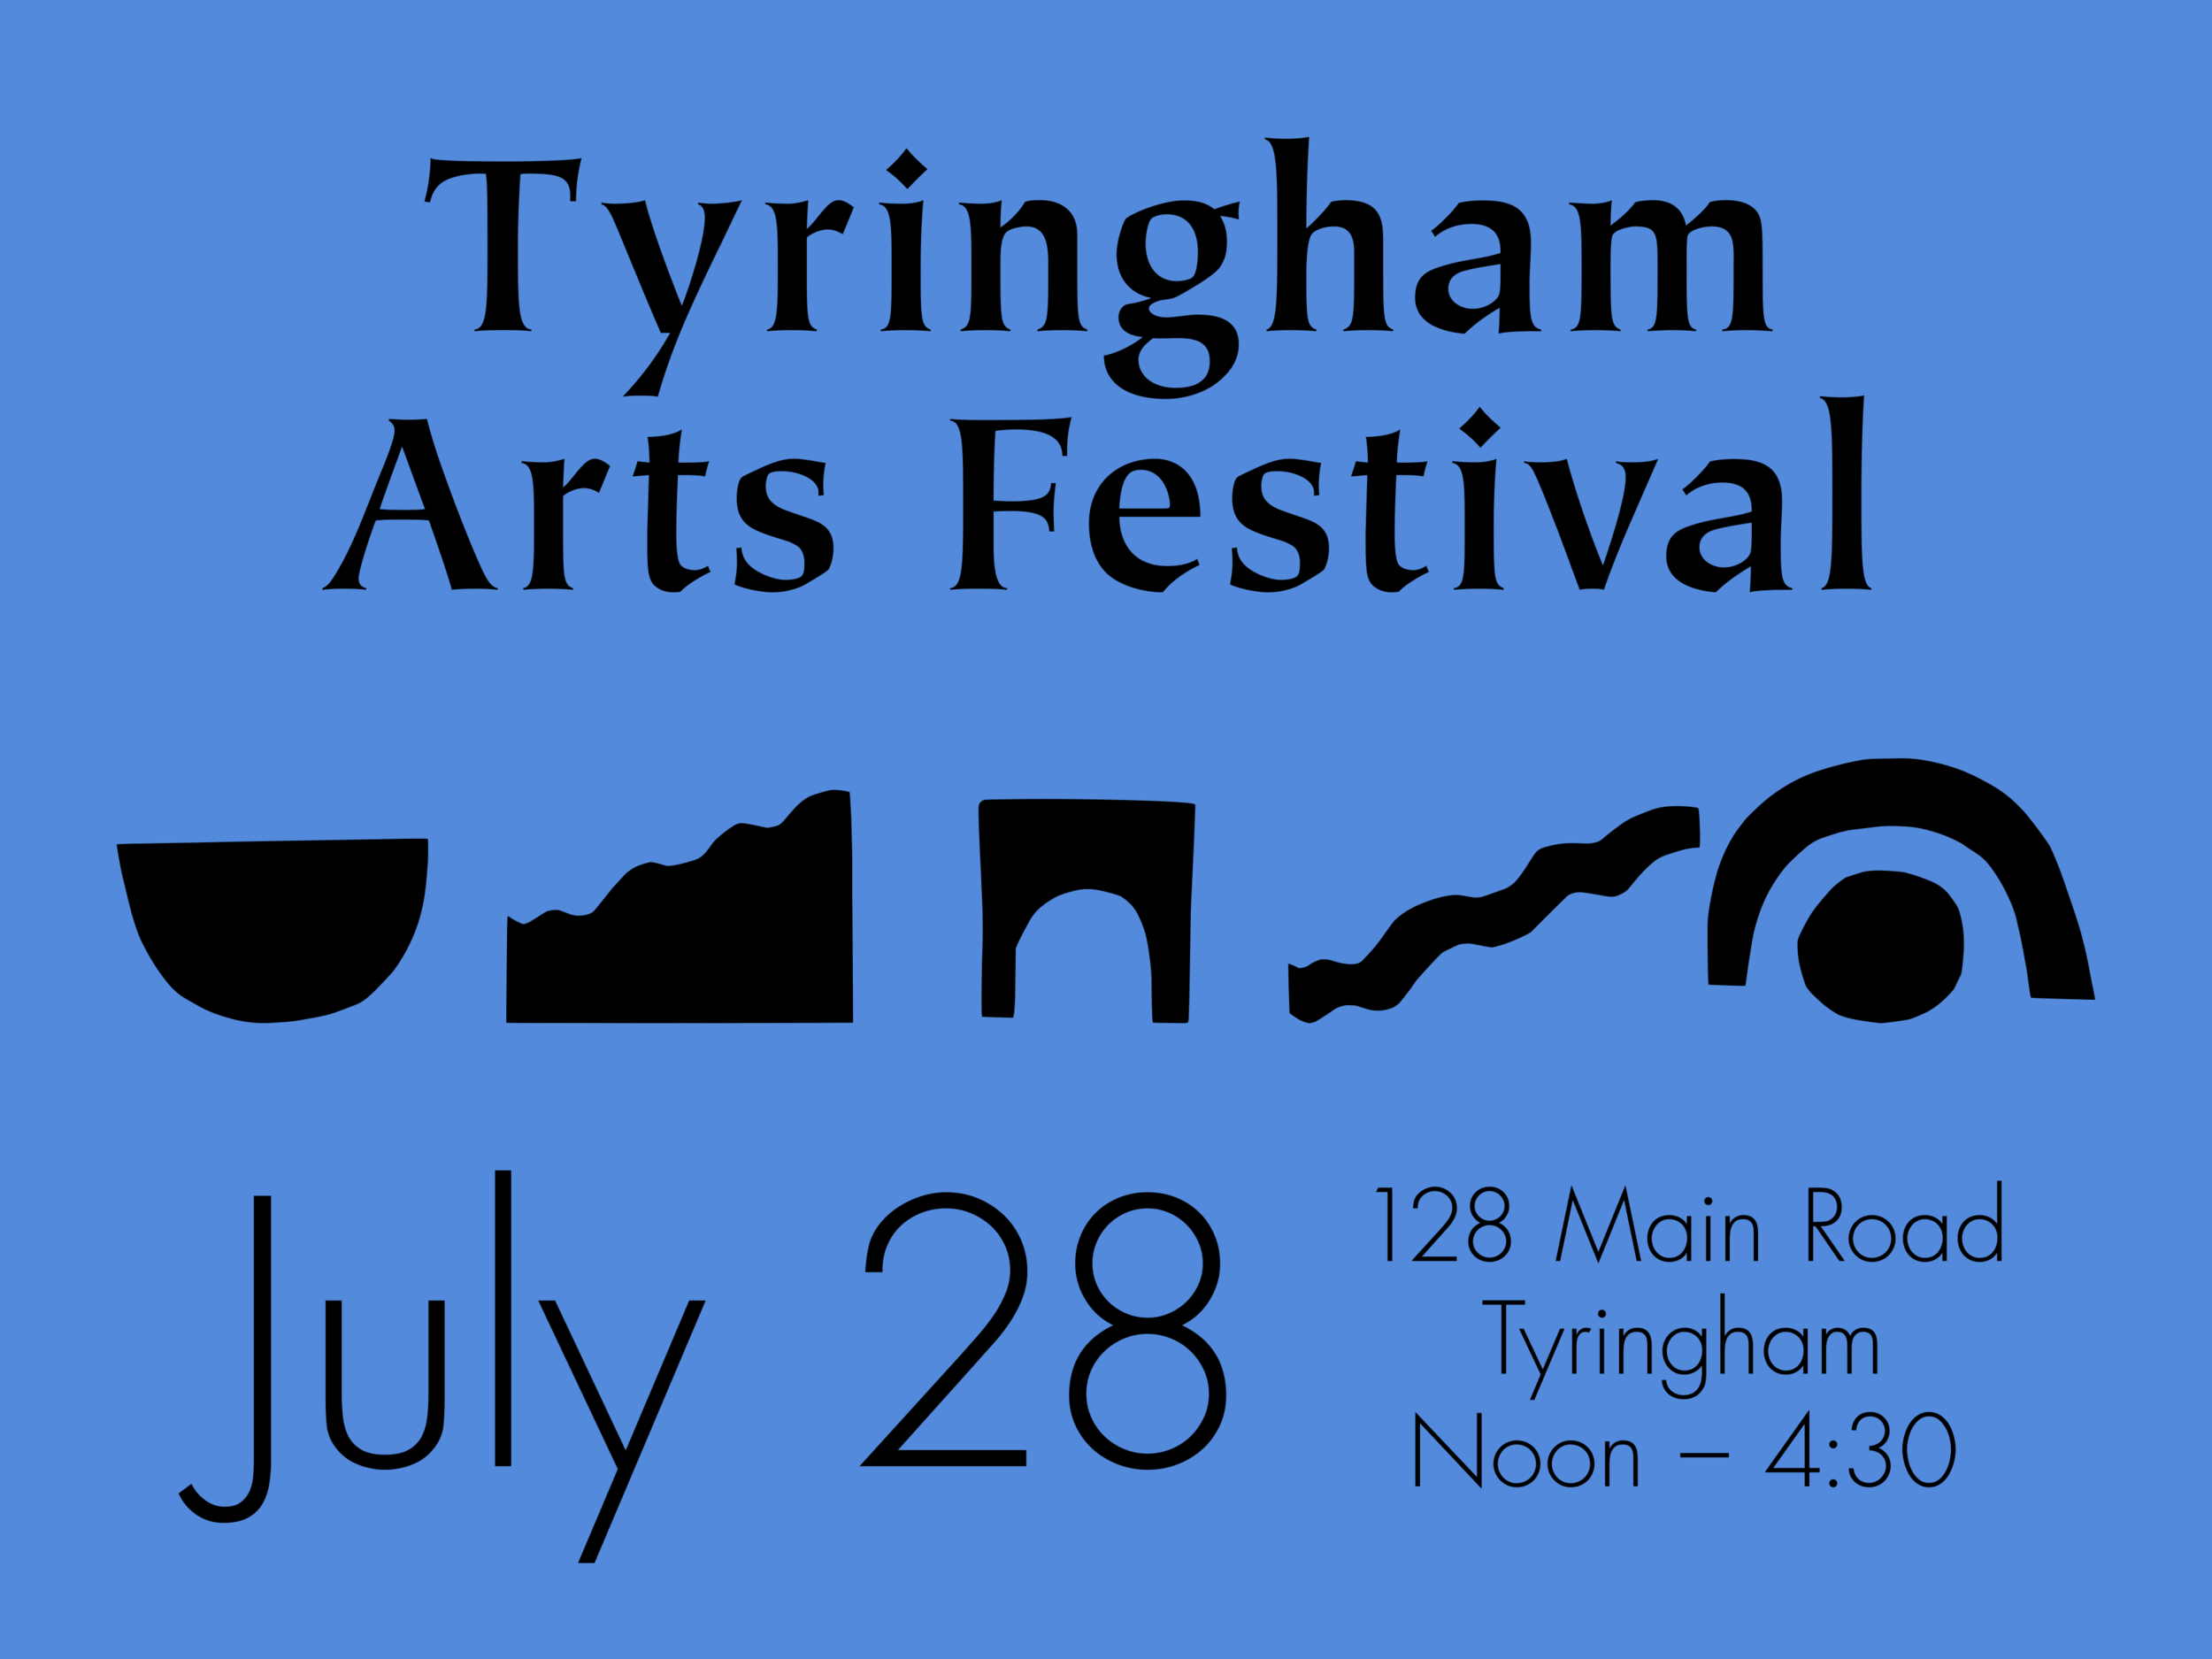 TyrArtFest-yardsign_V03Blue.png